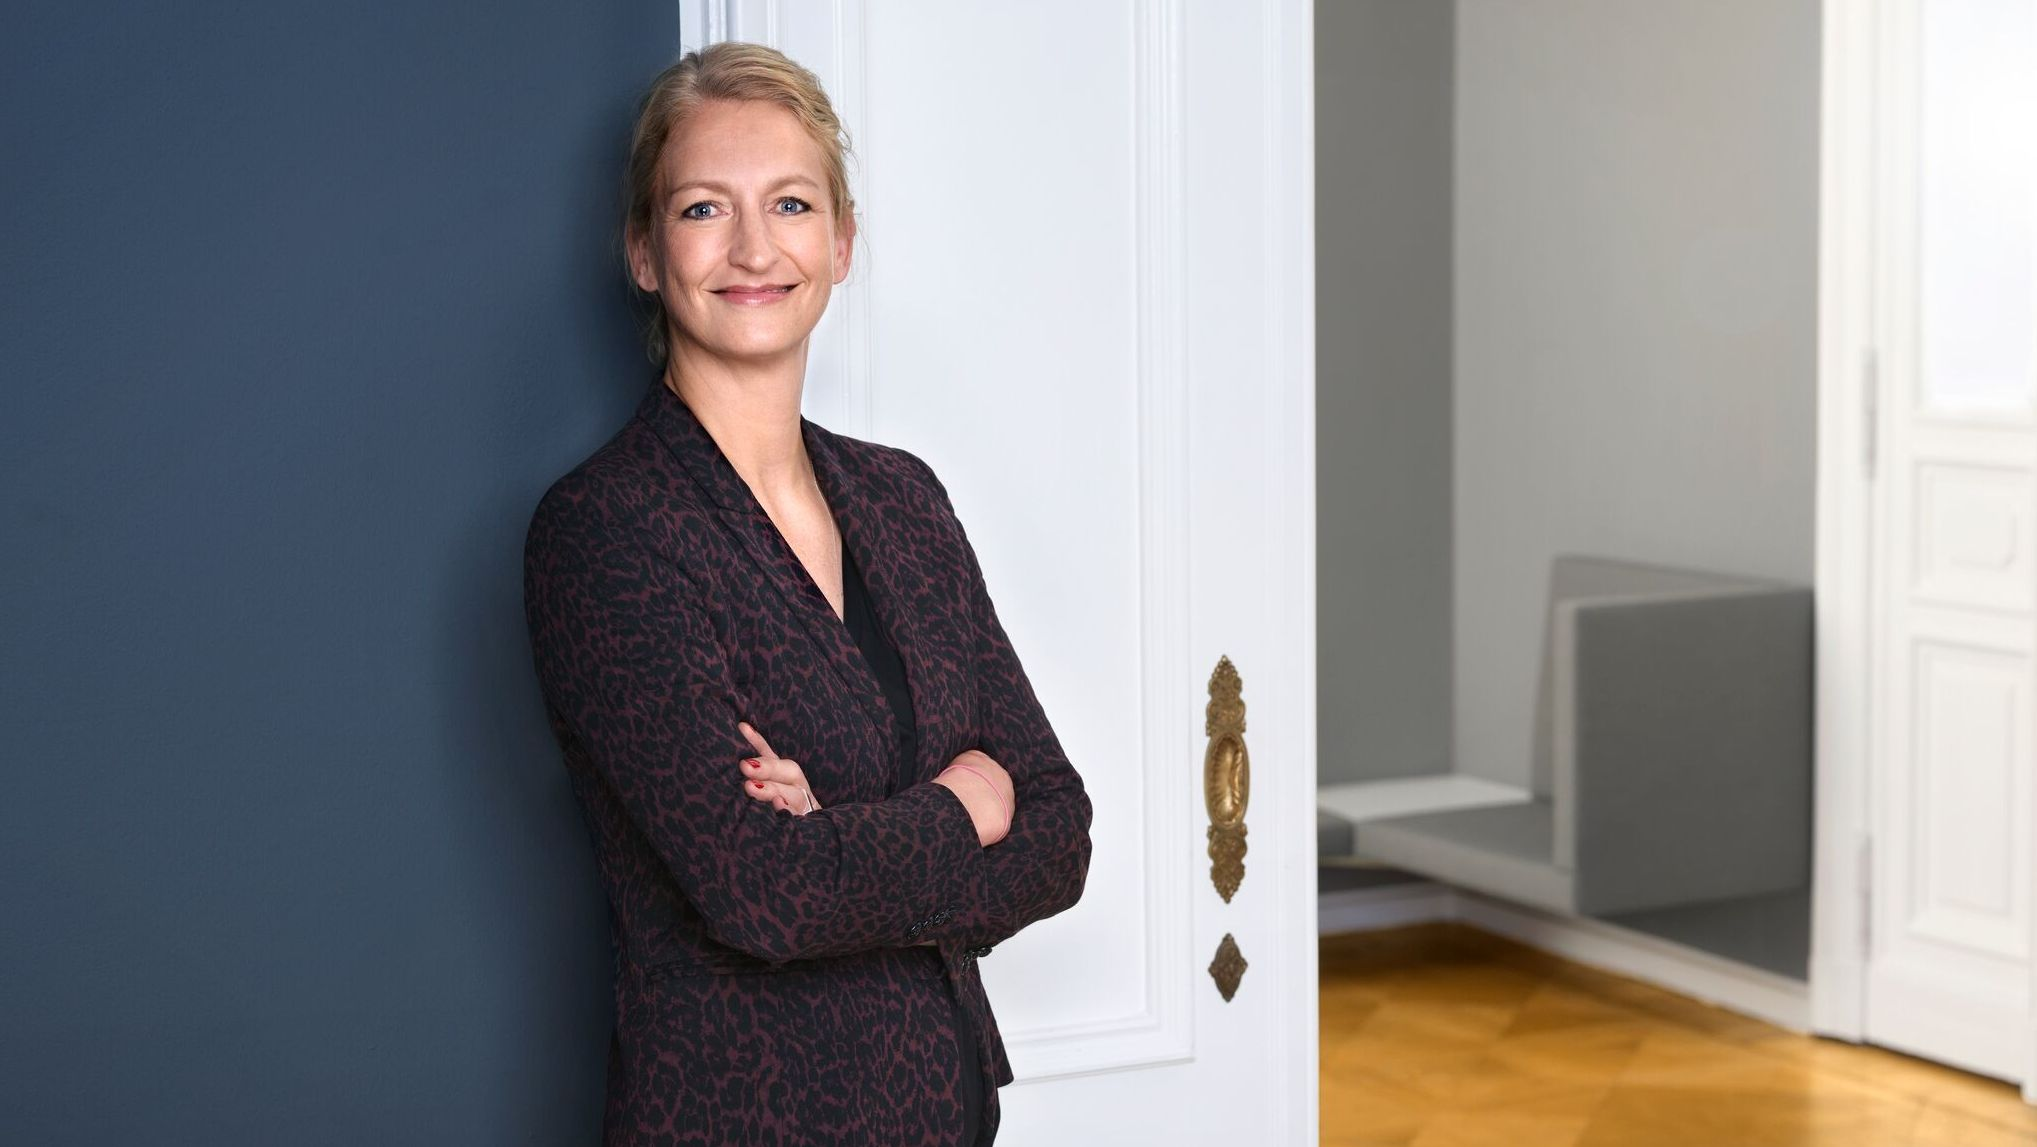 Caroline Theissen Managing Director bei Superunion Berlin